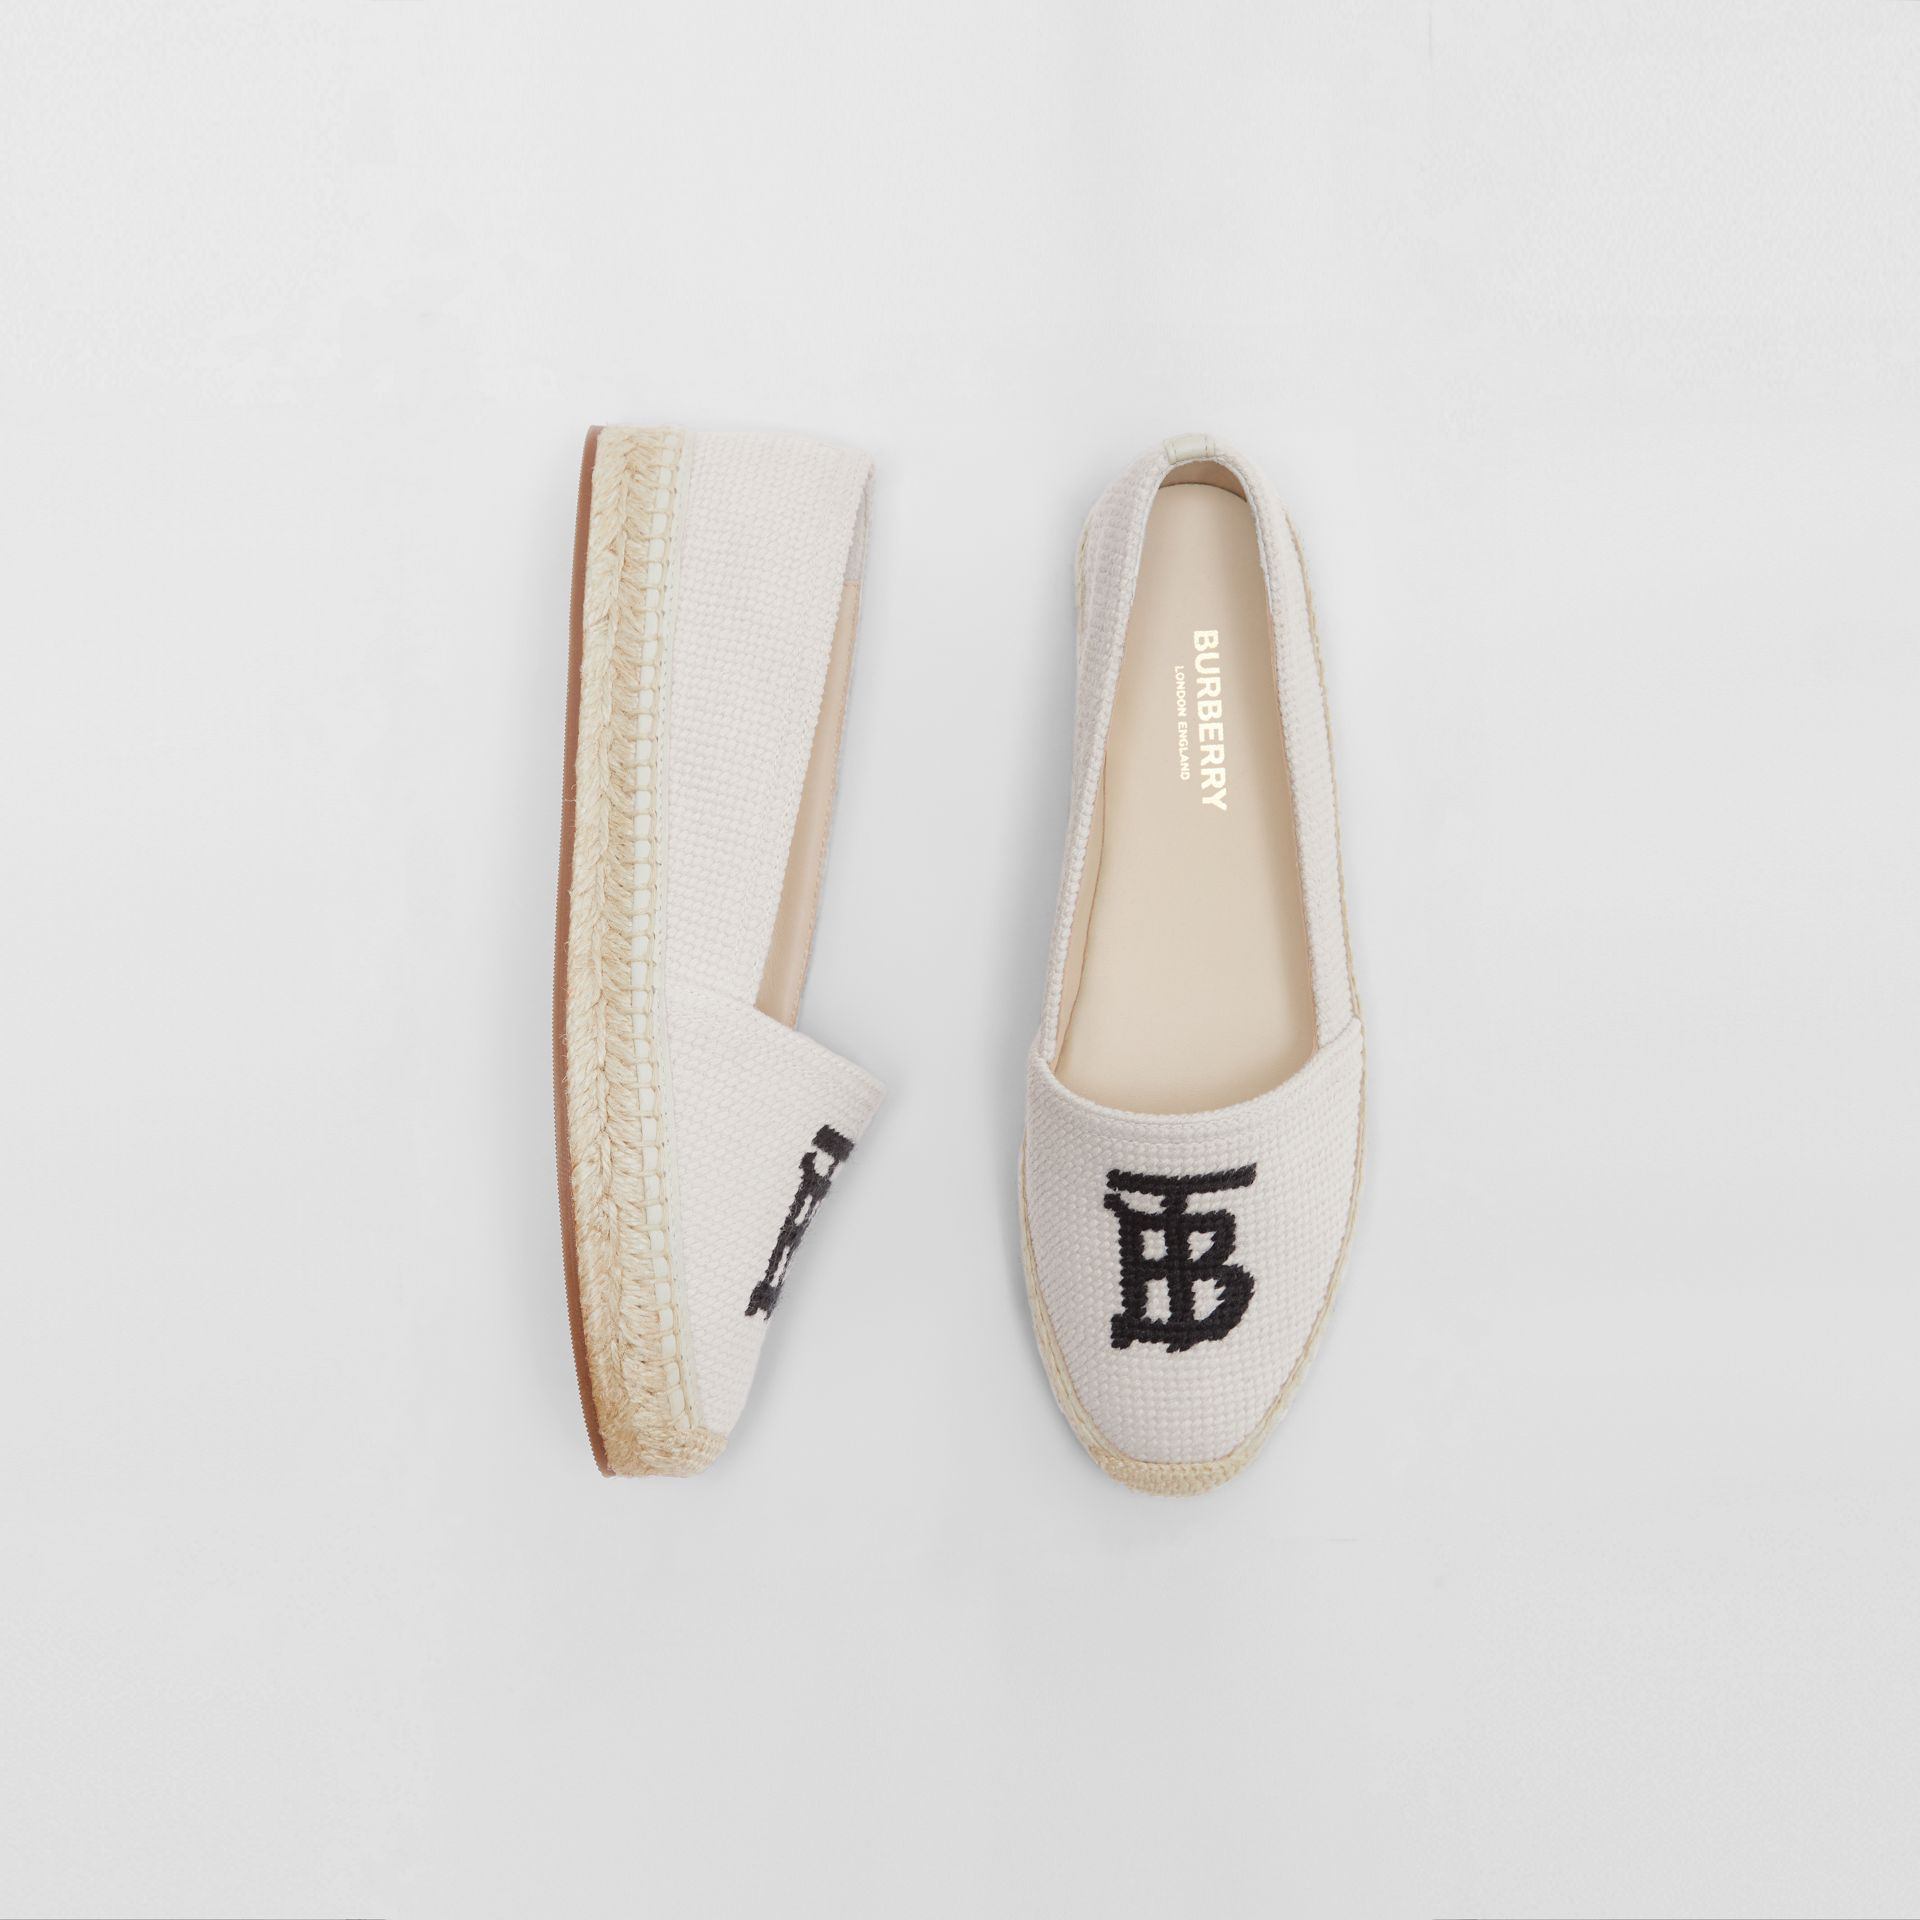 Monogram Motif Cotton and Leather Espadrilles in Ecru/black | Burberry United Kingdom - gallery image 0